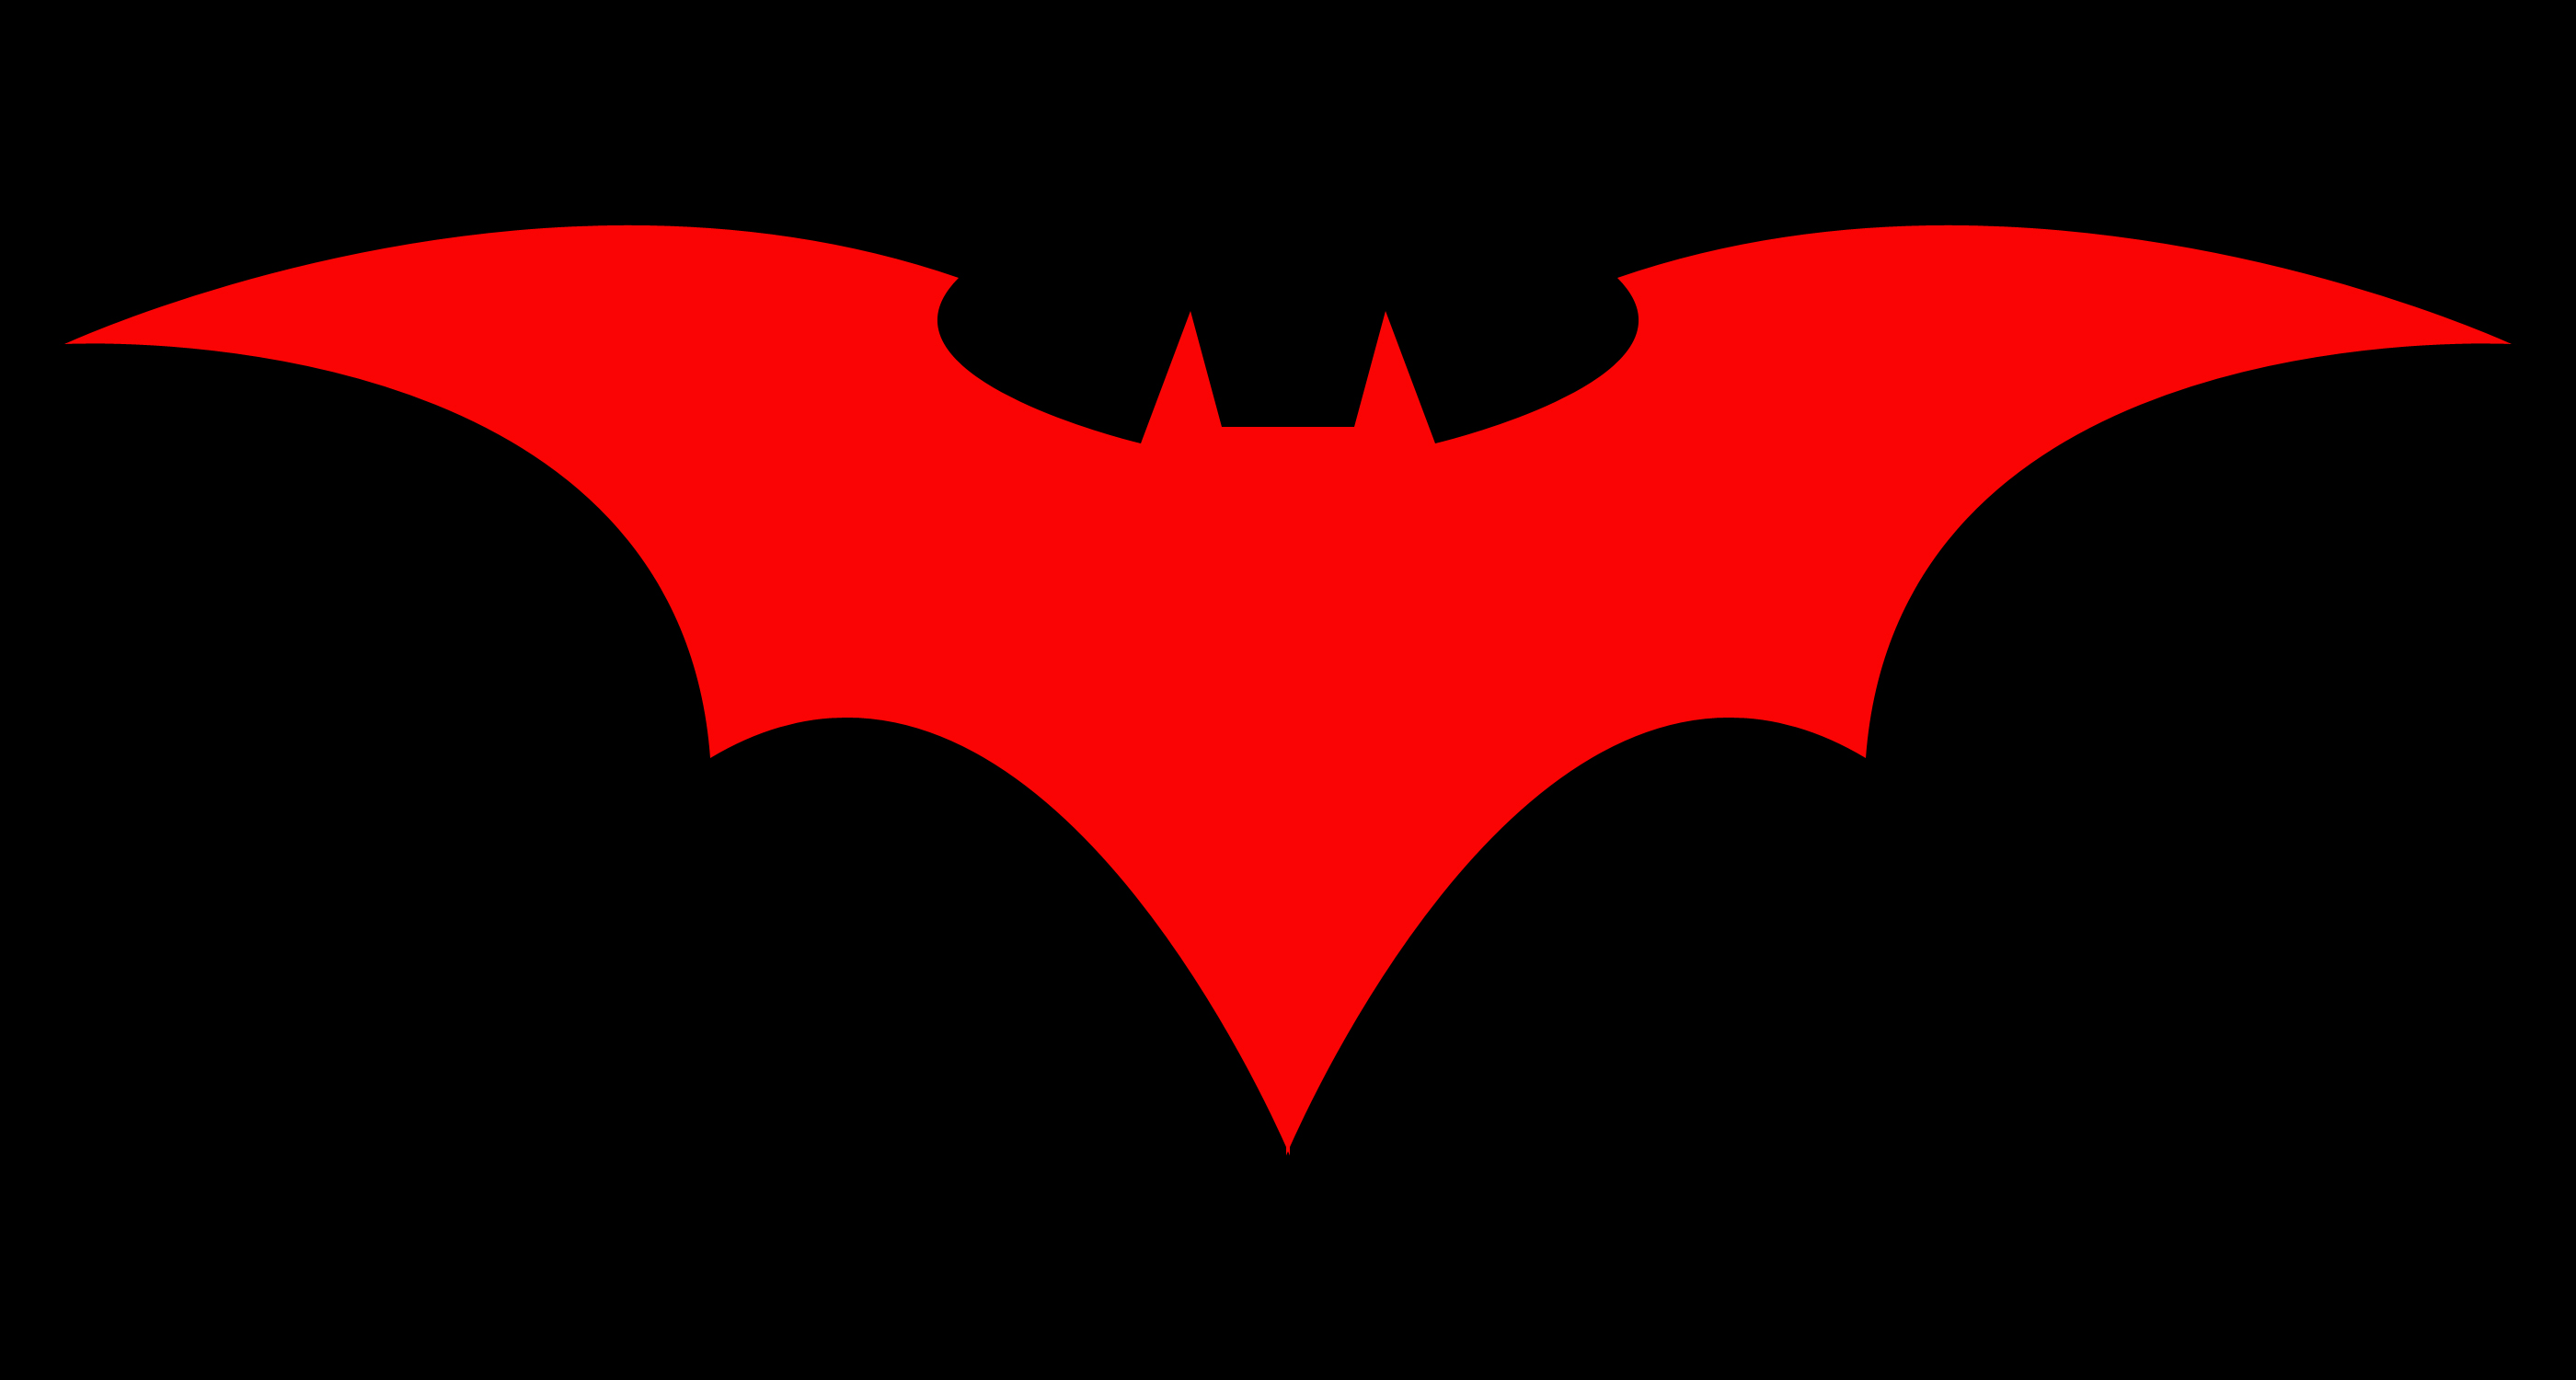 Dark Knight Returns Bat Logo Pictures to Pin on Pinterest ...